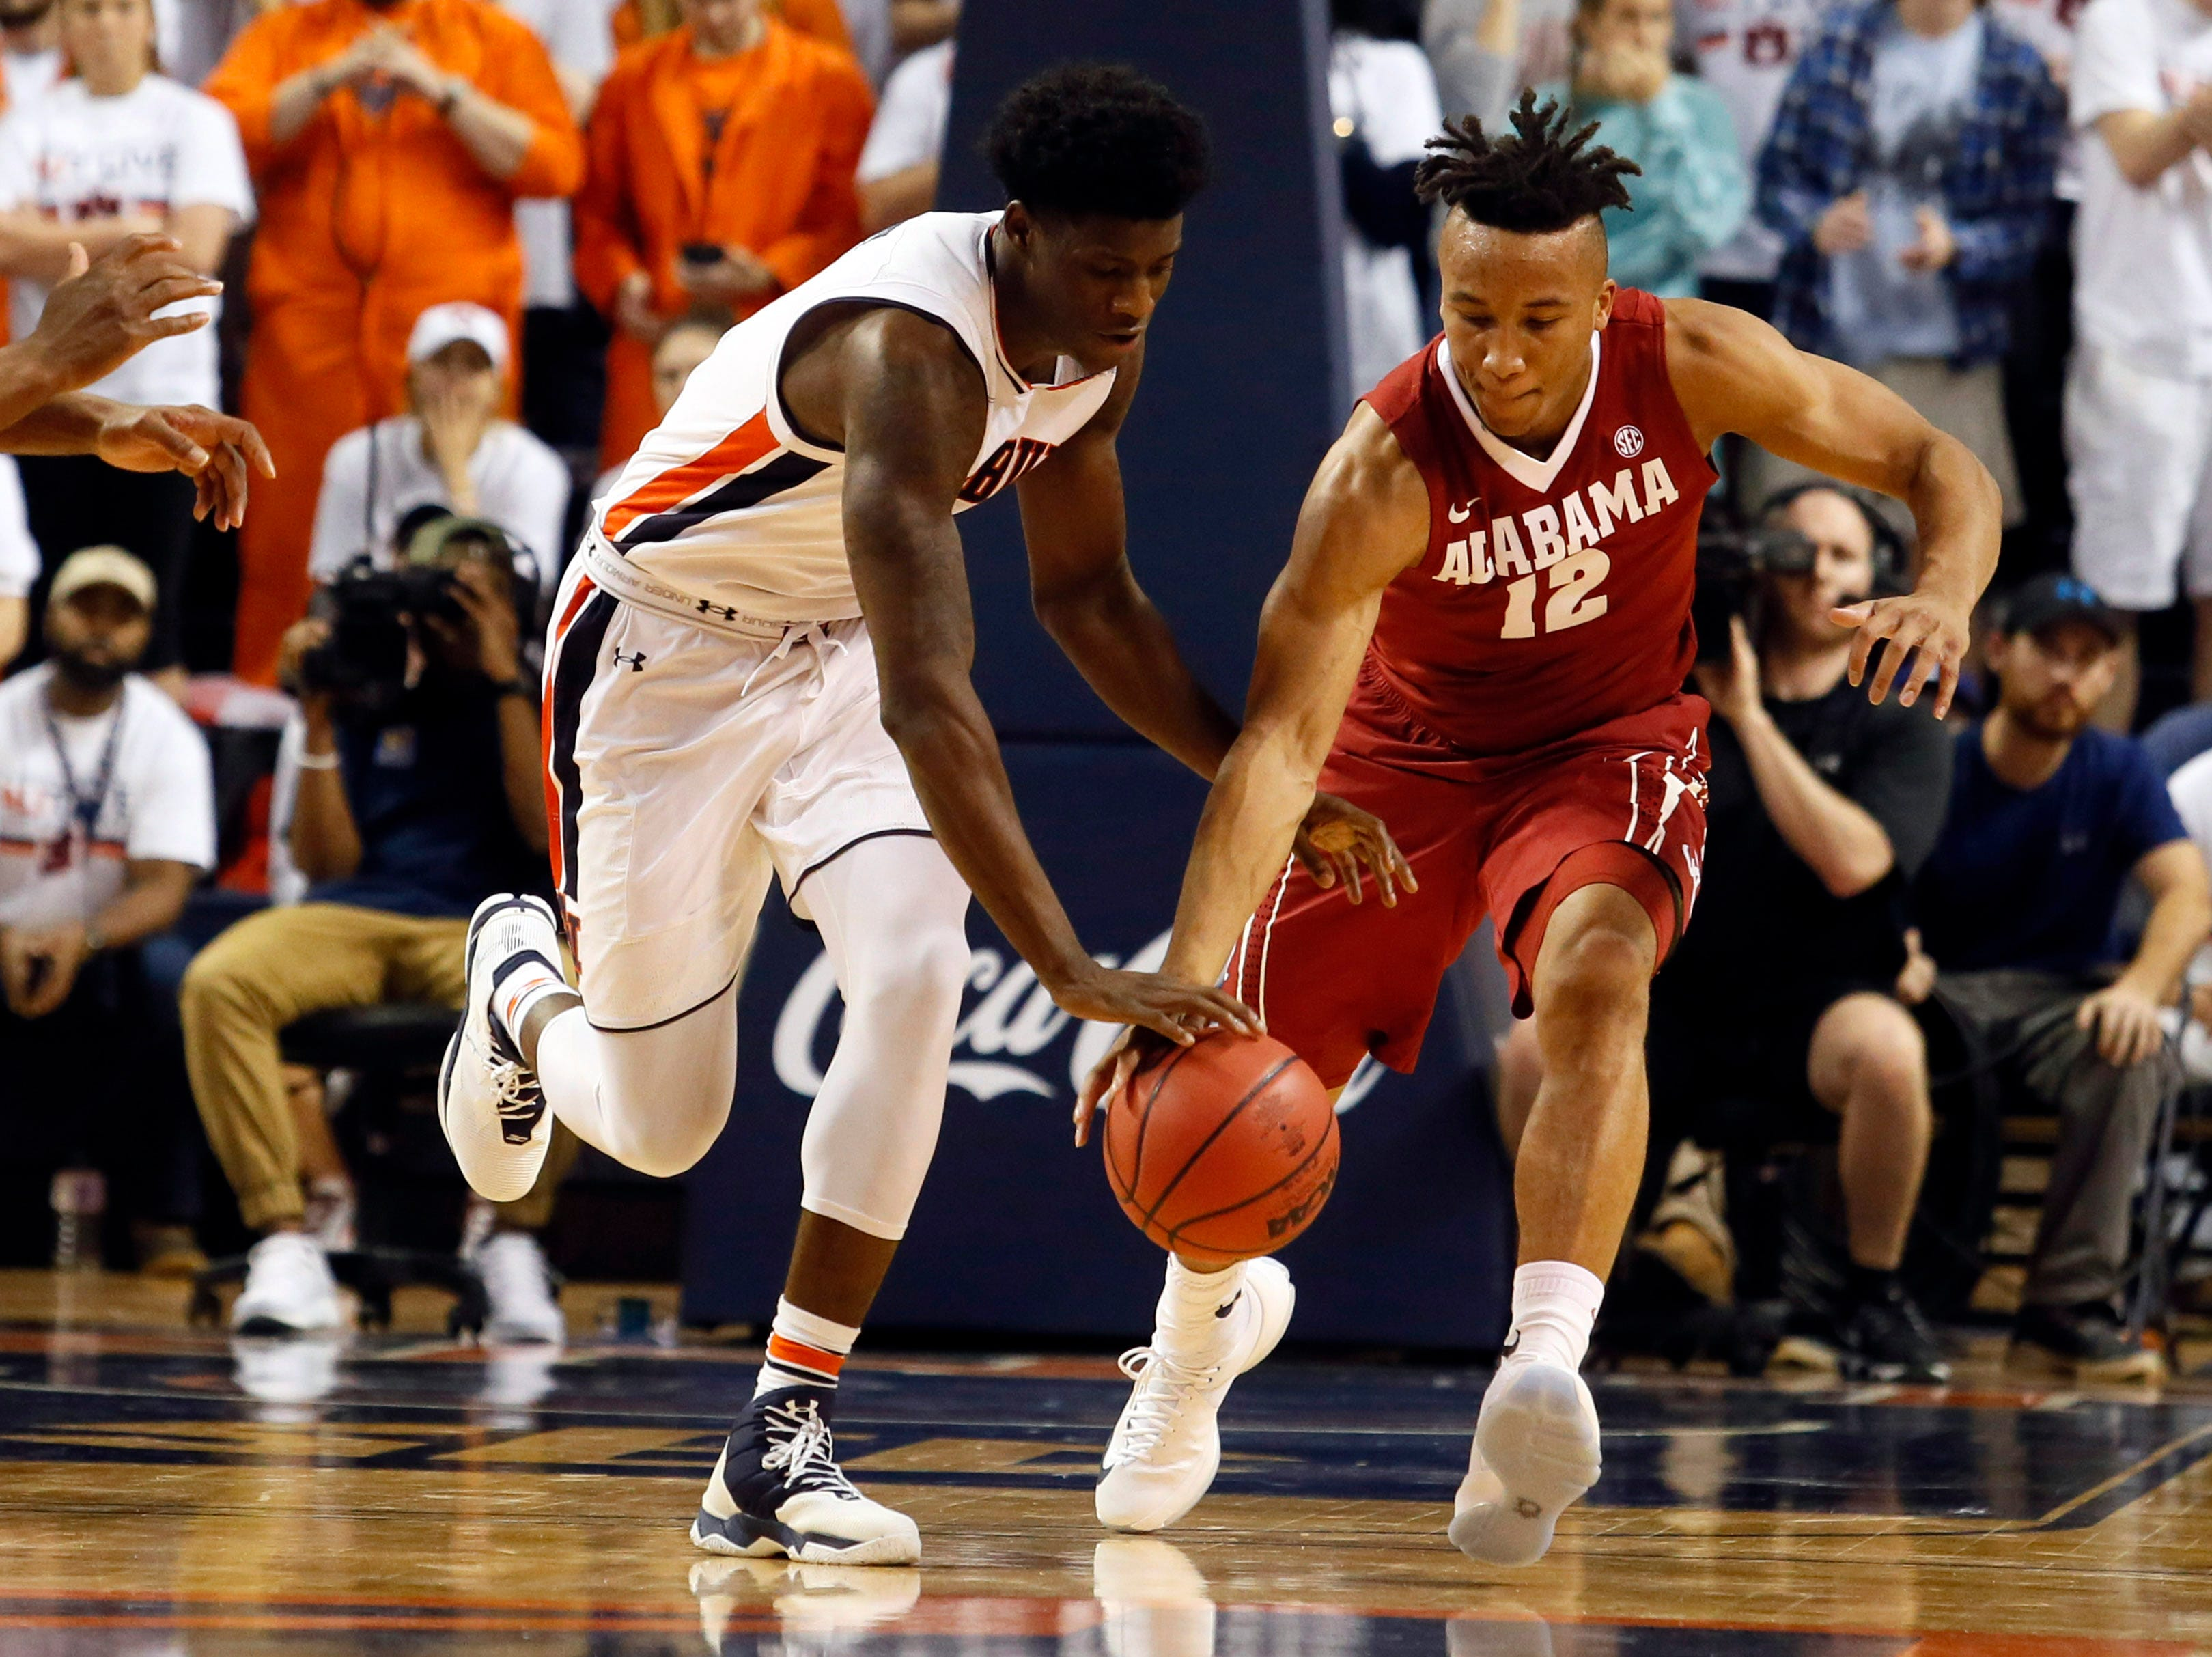 Jan 21, 2017; Auburn, AL, USA; Auburn Tigers forward Danjel Purifoy (3) and Alabama Crimson Tide guard Dazon Ingram (12) fight for the ball during the second half at Auburn Arena.  The Tigers beat the Tide 84-64. Mandatory Credit: John Reed-USA TODAY Sports